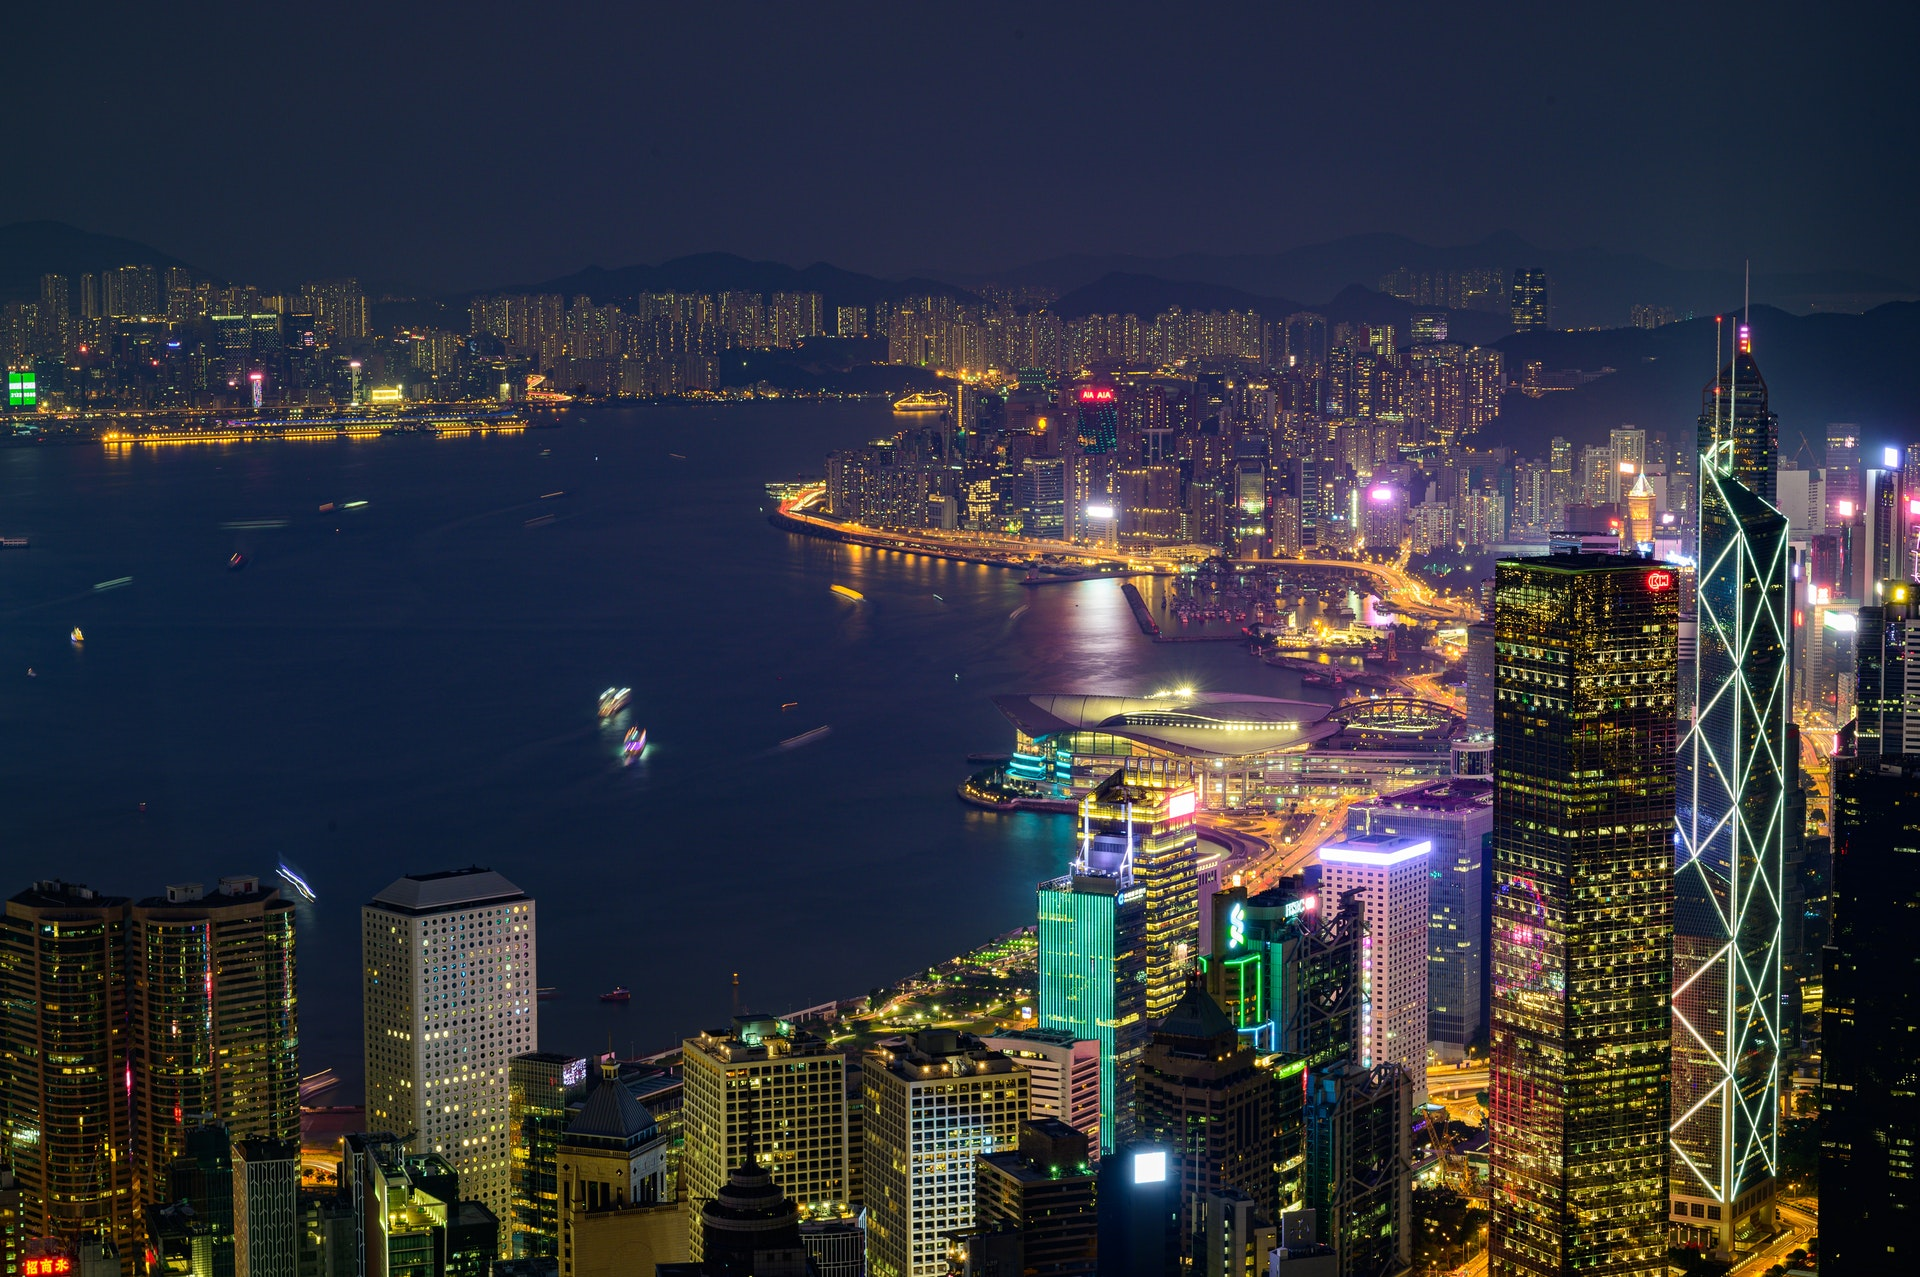 Huobi subsidiary nabs Hong Kong asset management license · TechNode